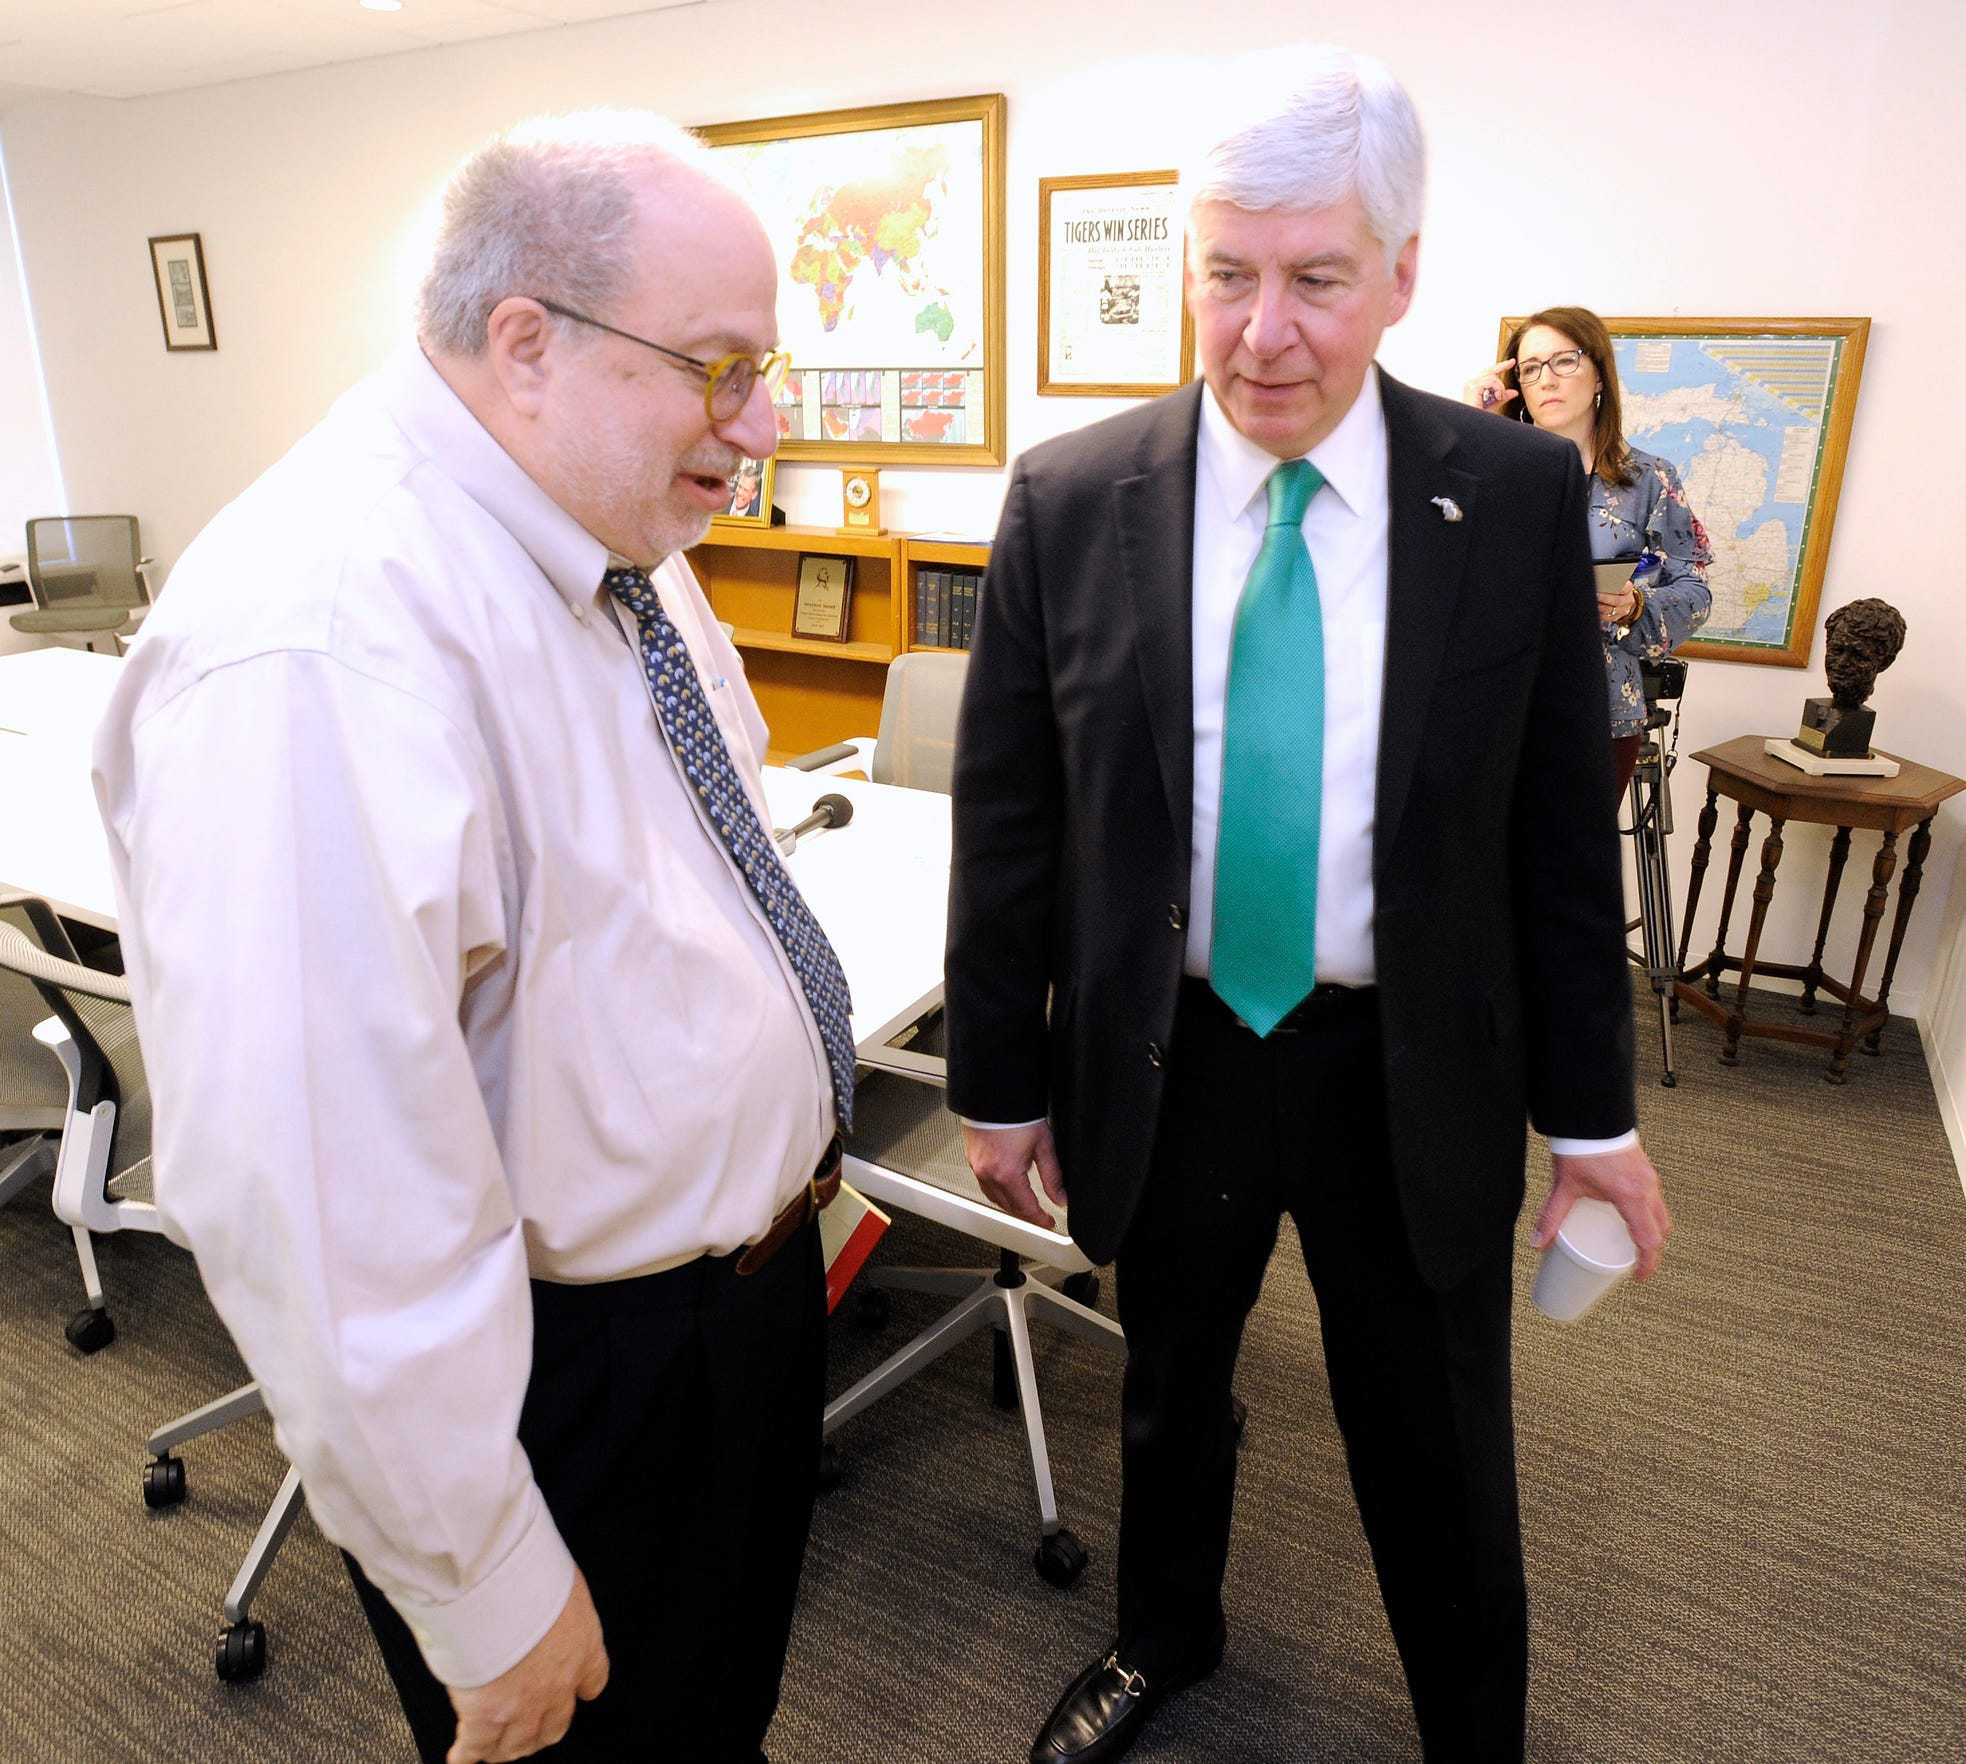 Detroit News Editor and Publisher Jonathan Wolman, left, talks with Michigan Gov. Rick Snyder after Snyder met with the newspaper's editorial board on Jan. 24, 2018.